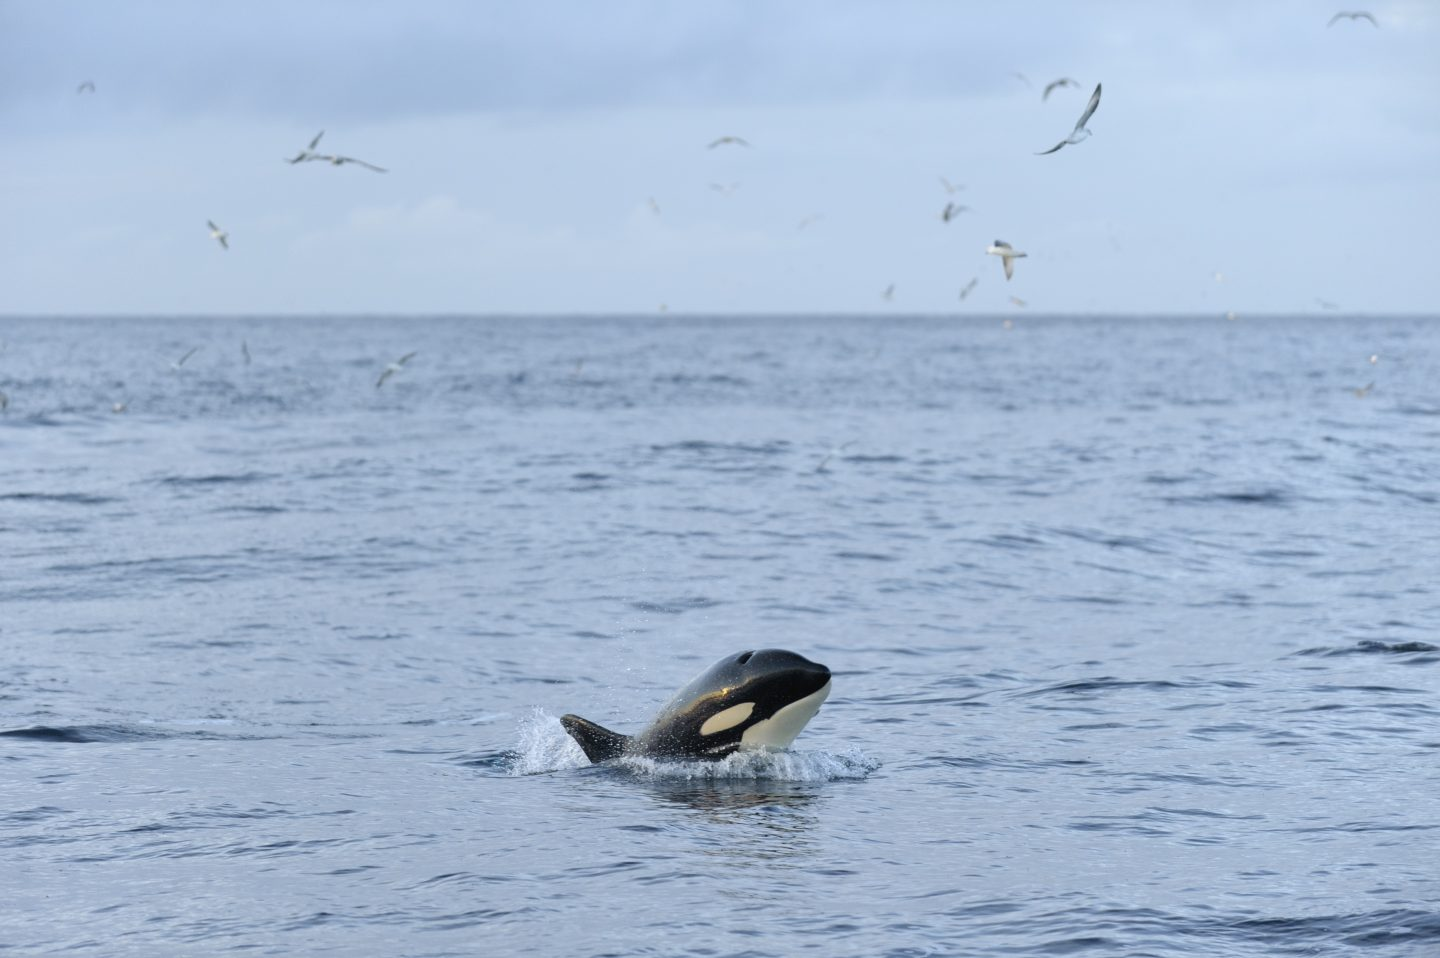 Killer whale (Orcinus orca) following Shetland pelagic trawler 'Charisma', near Shetland Isles, Scotland, UK, October 2012.